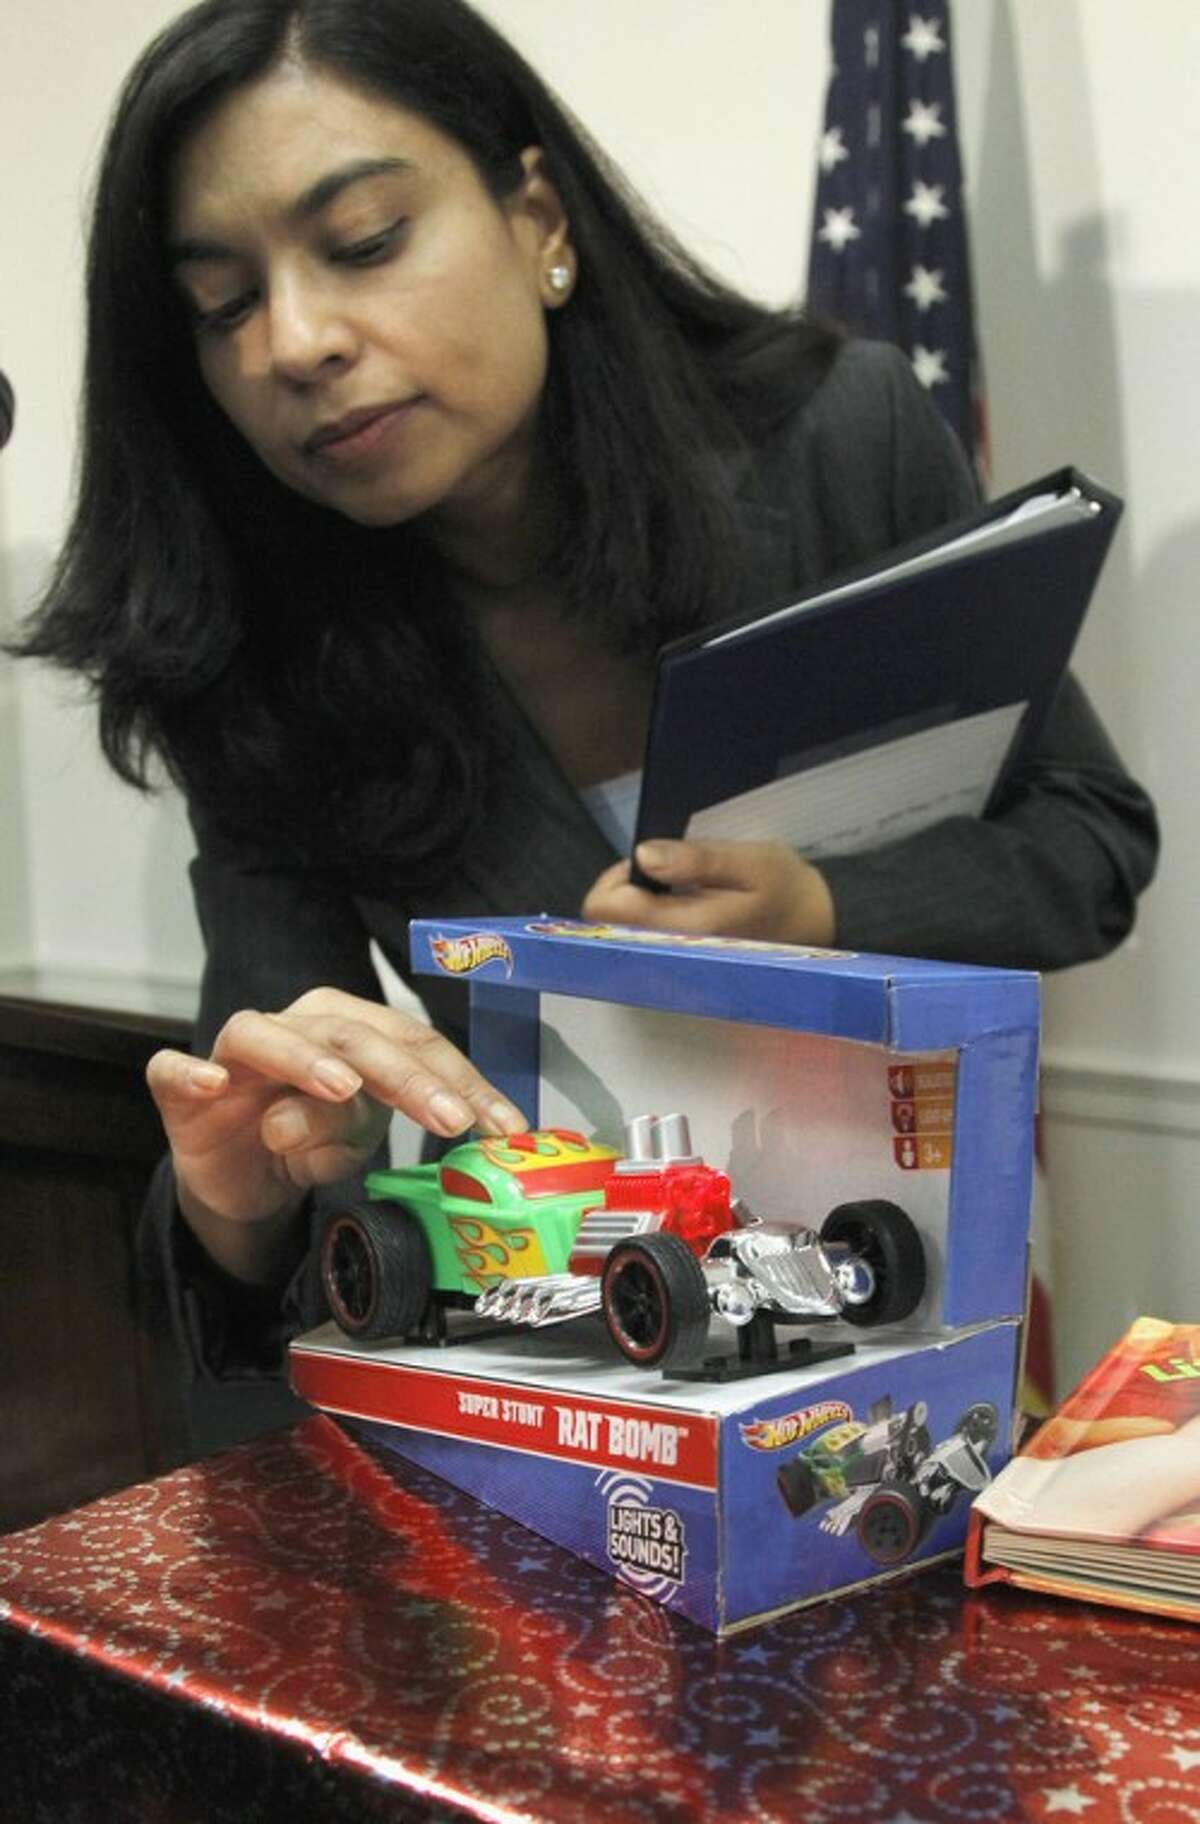 Nasima Hossain from the US Public Interest Research Group (PIRG) demonstrates a toy that has high noise levels during their news conference on dangerous or toxic toys, Tuesday, Nov. 22, 2011, on Capitol Hill in Washington. (AP Photo/Pablo Martinez Monsivais)